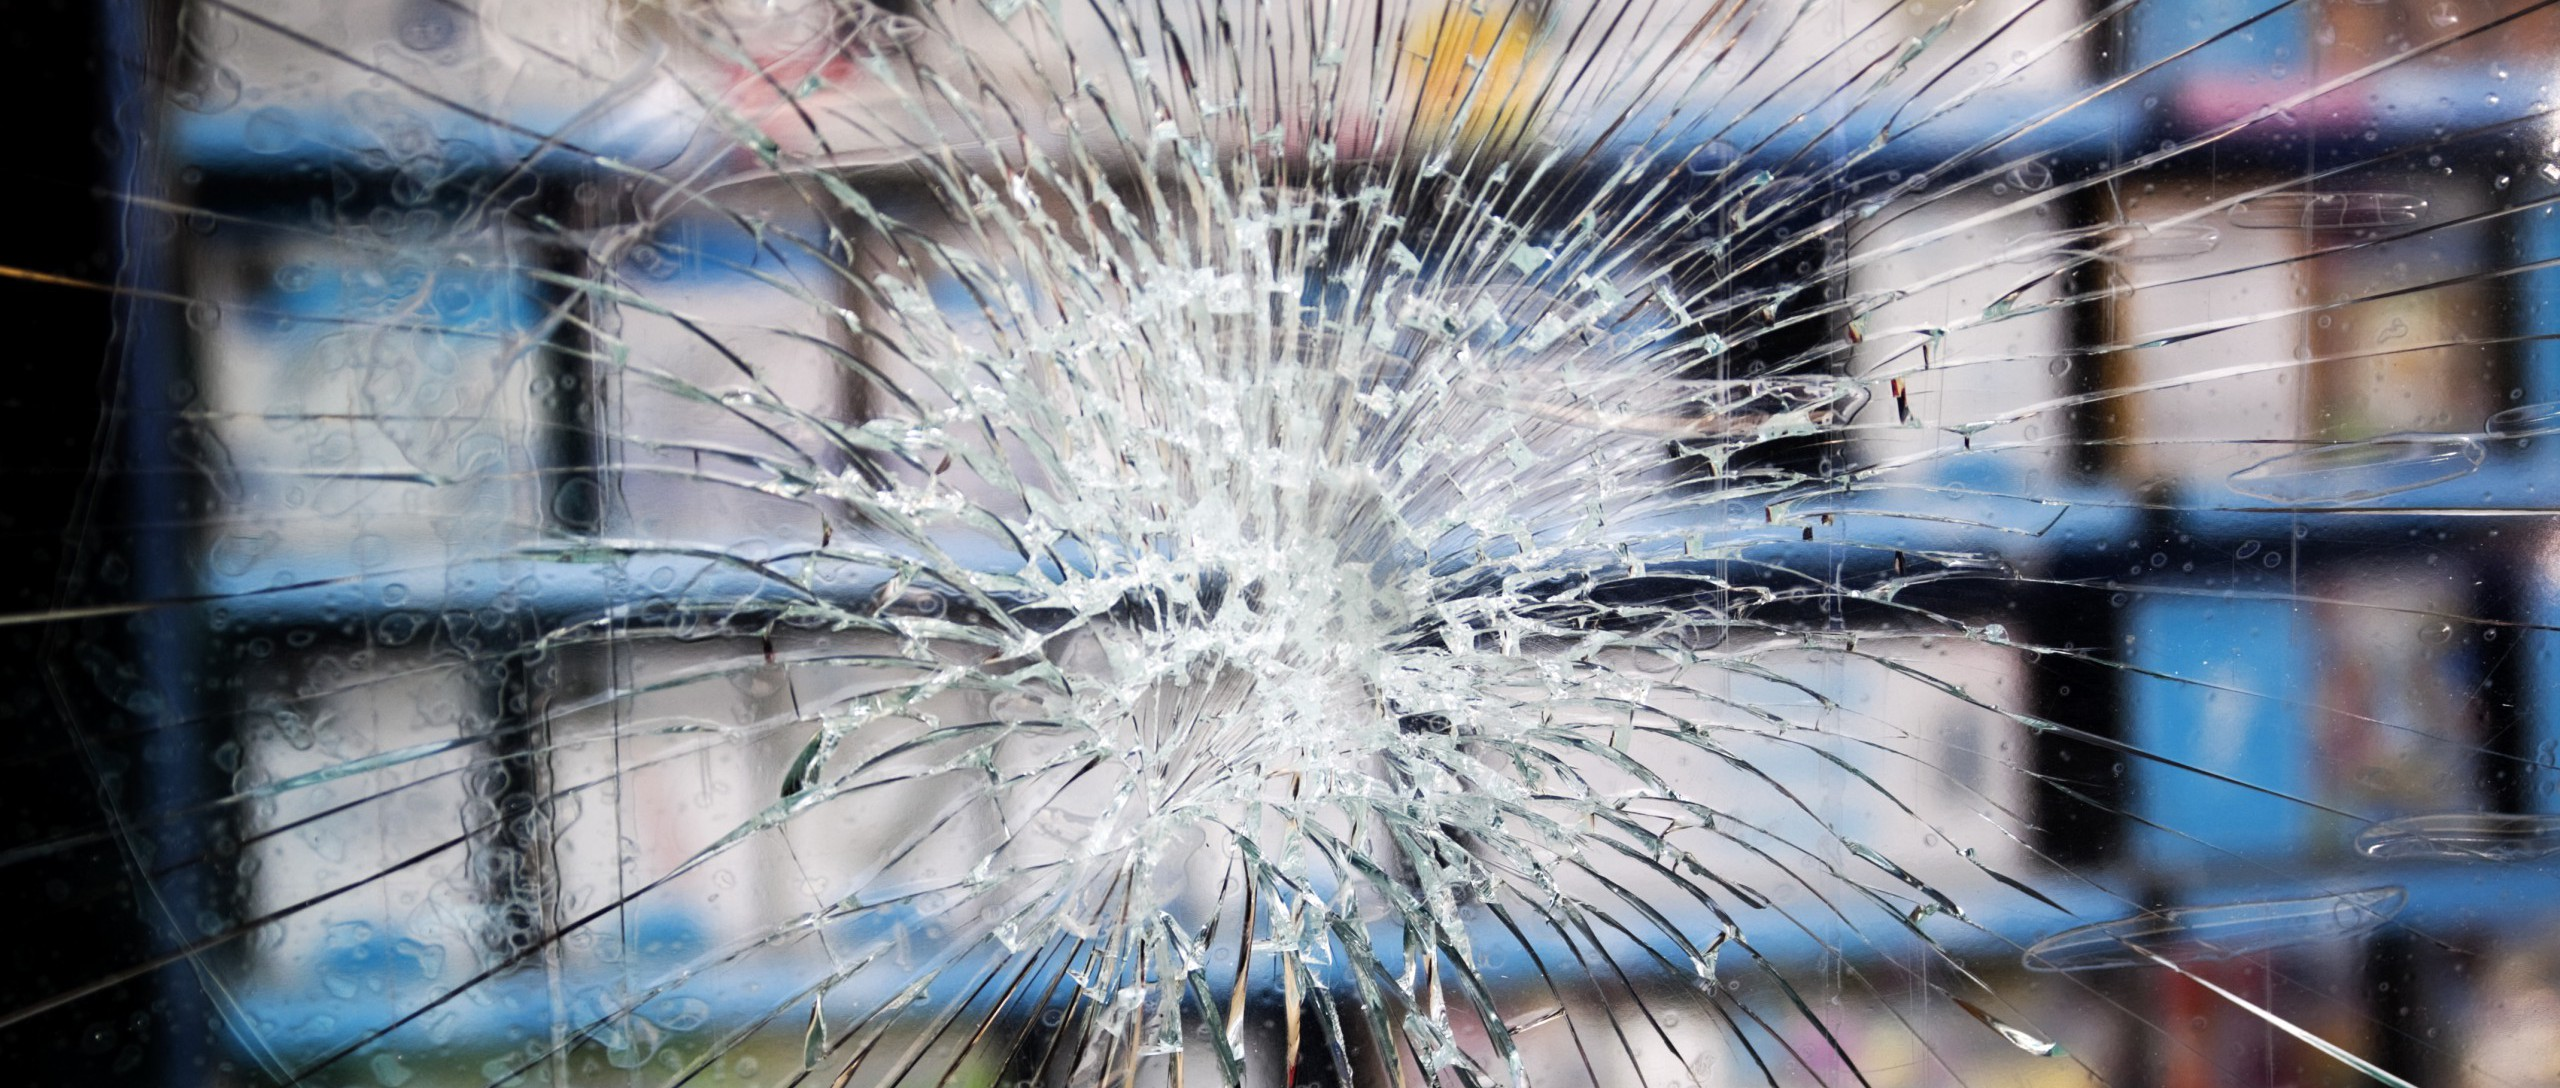 Smashed window with toughened glass